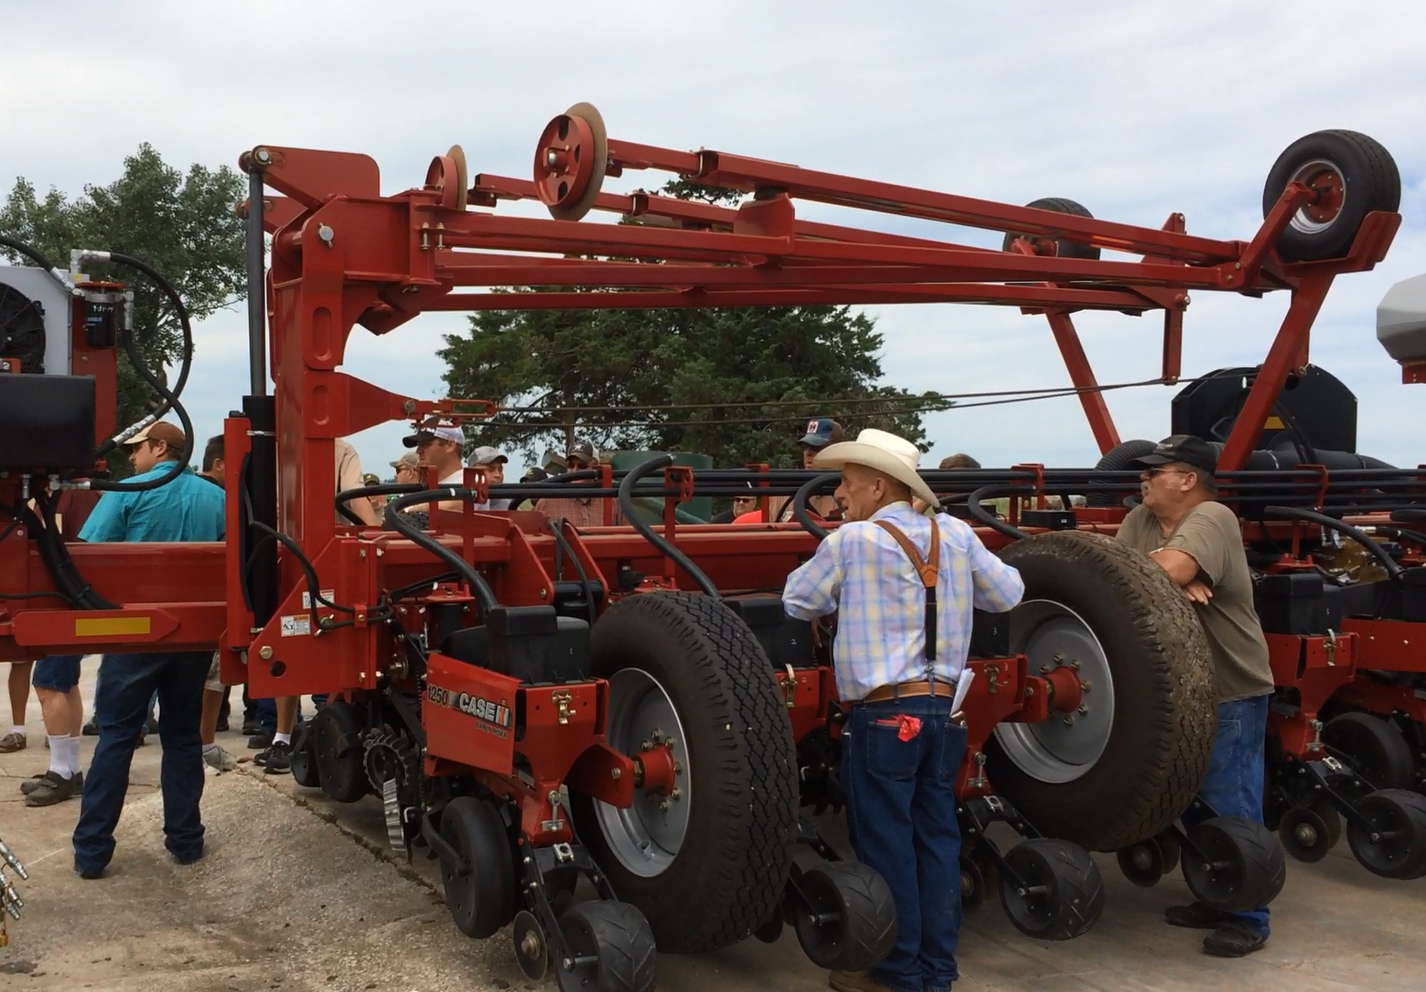 This 2013 Case IH 1250 sold for $59,000 on Aug. 1 at a farm auction in southwest Iowa.